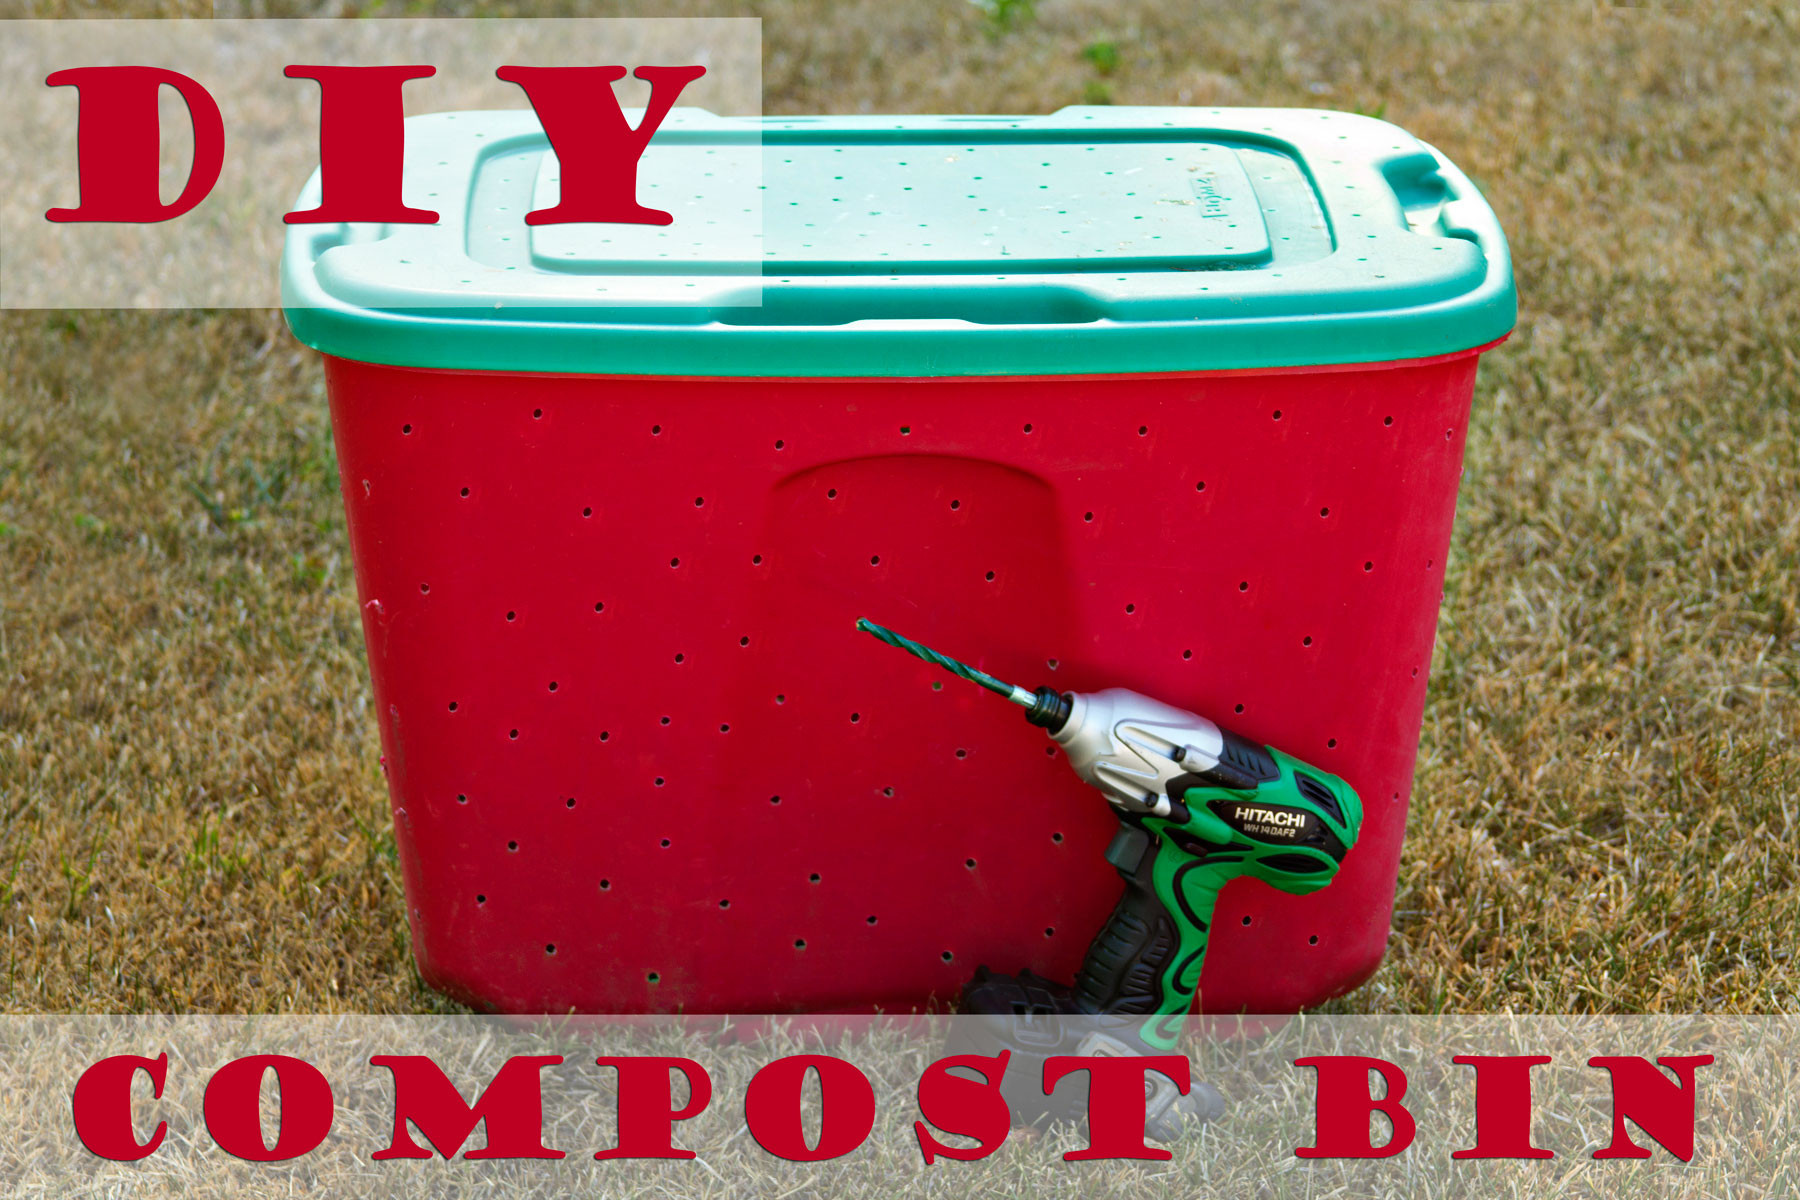 Best ideas about Compost Bin DIY . Save or Pin How To Make an Easy DIY post Bin Now.